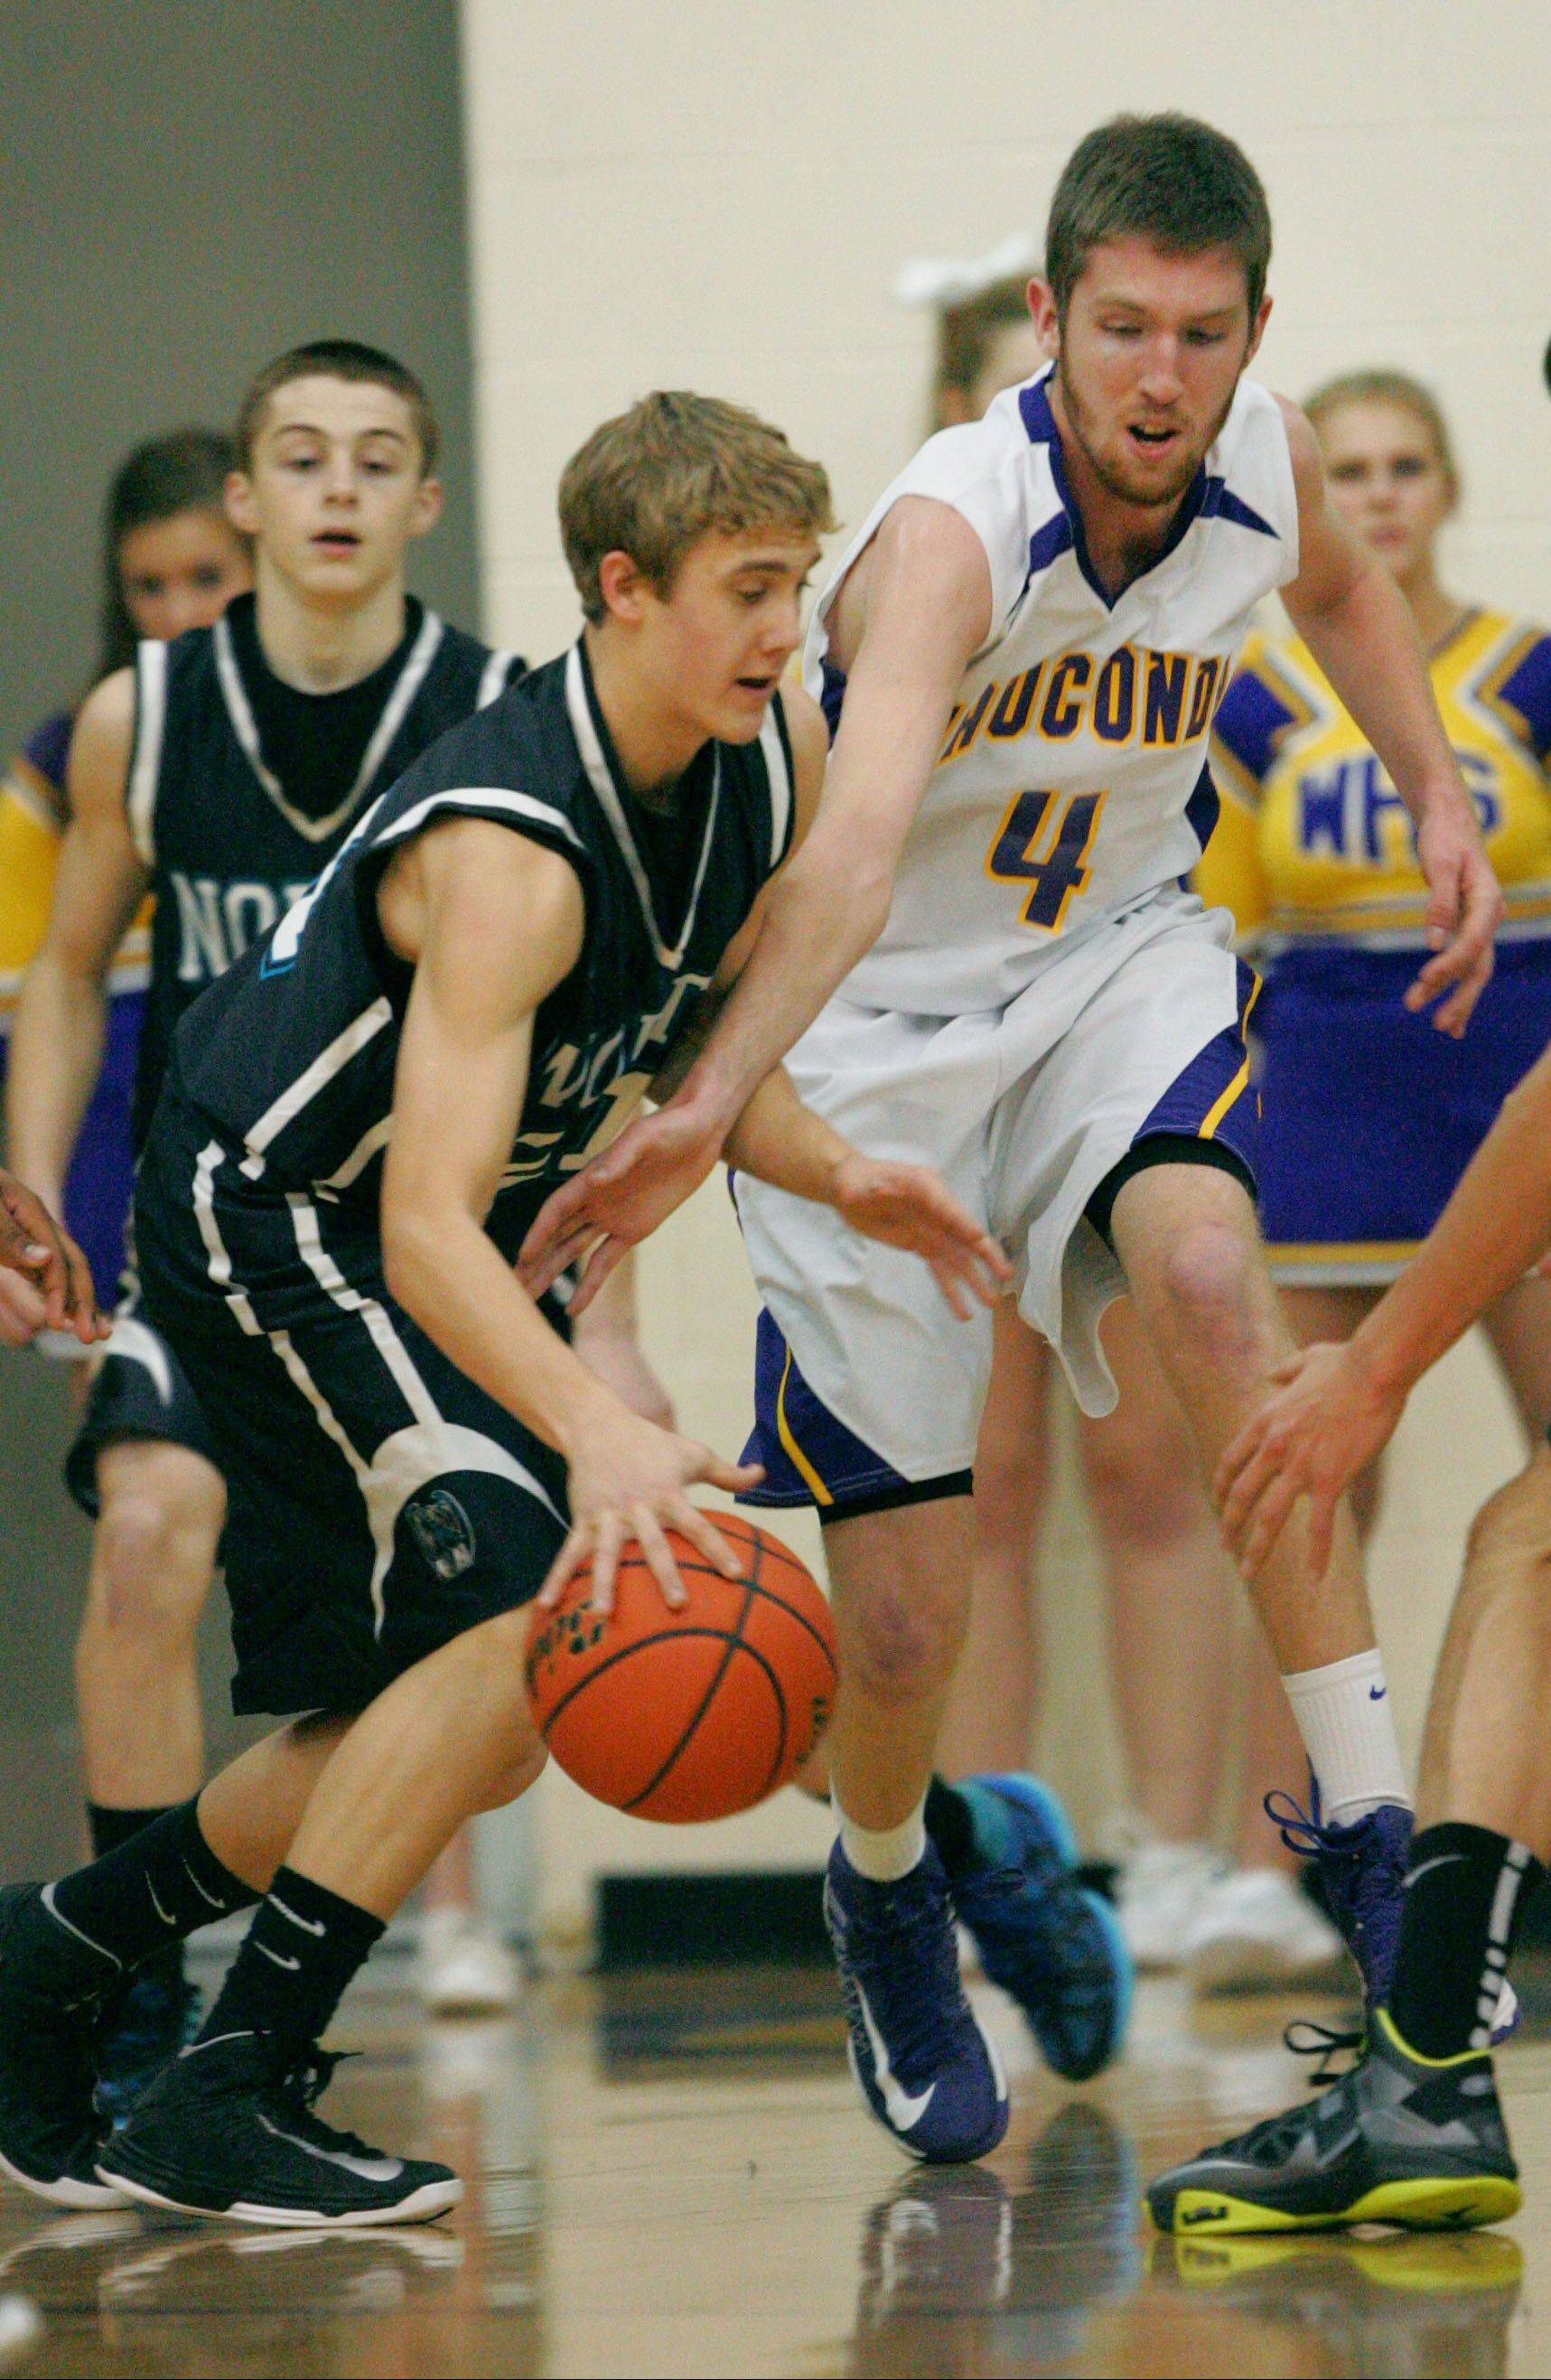 Wauconda gamely gets it done